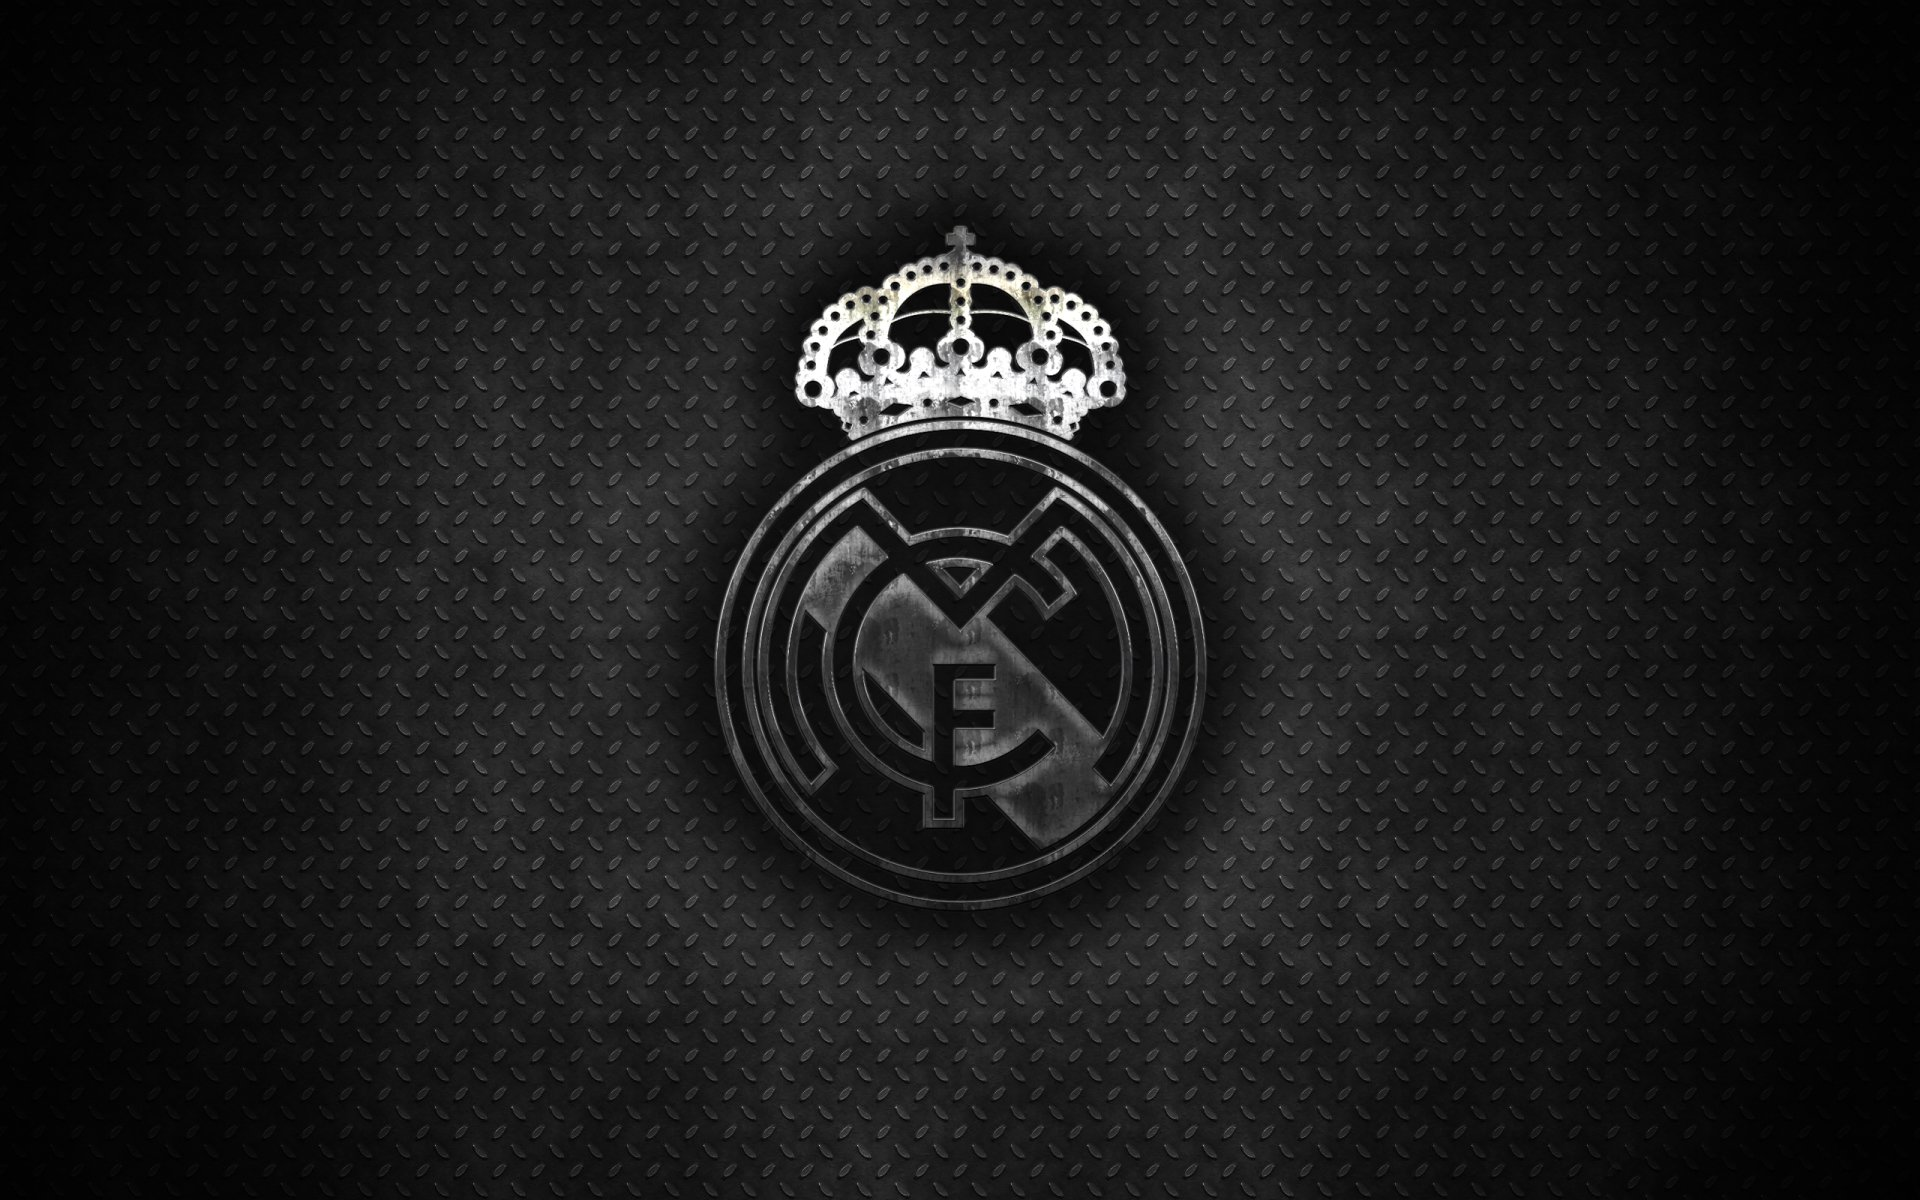 75 Real Madrid Cf Hd Wallpapers Background Images